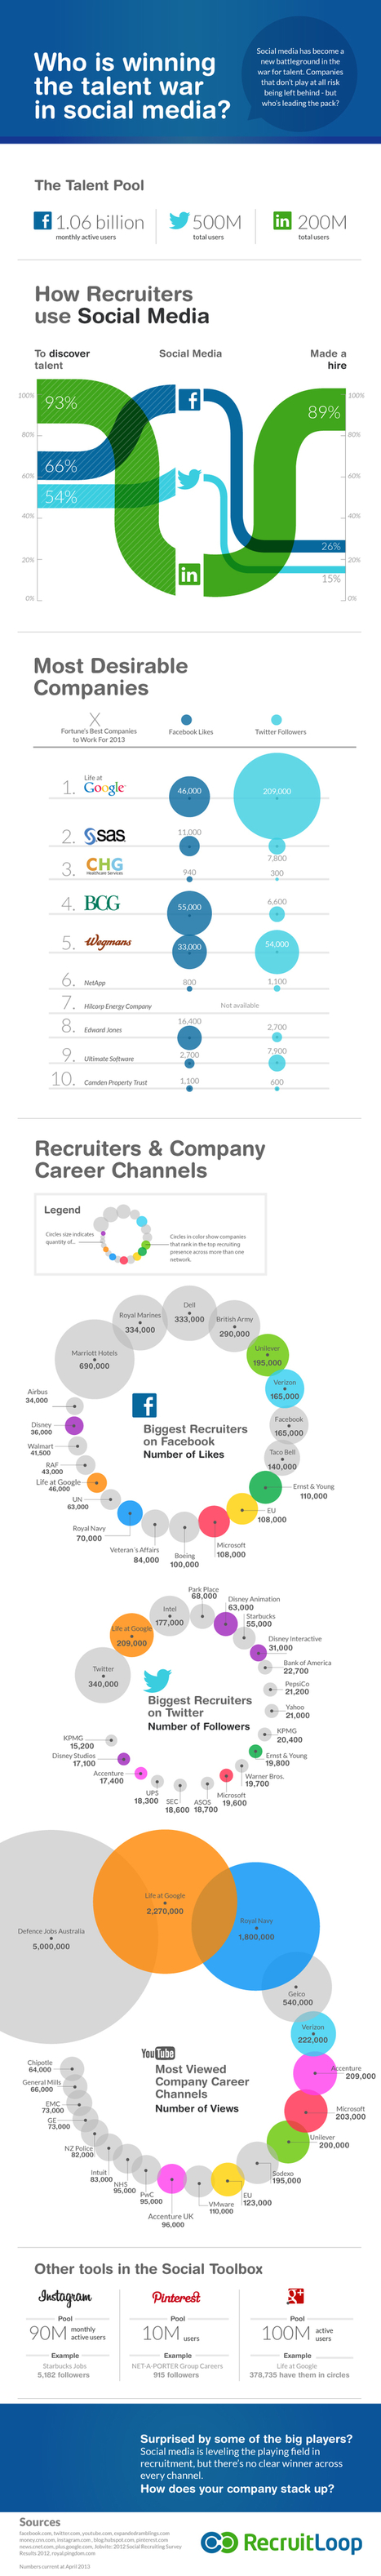 Social Media Talent War: Who's Winning? [INFOGRAPHIC] | Sourcing & Recruiting | Scoop.it